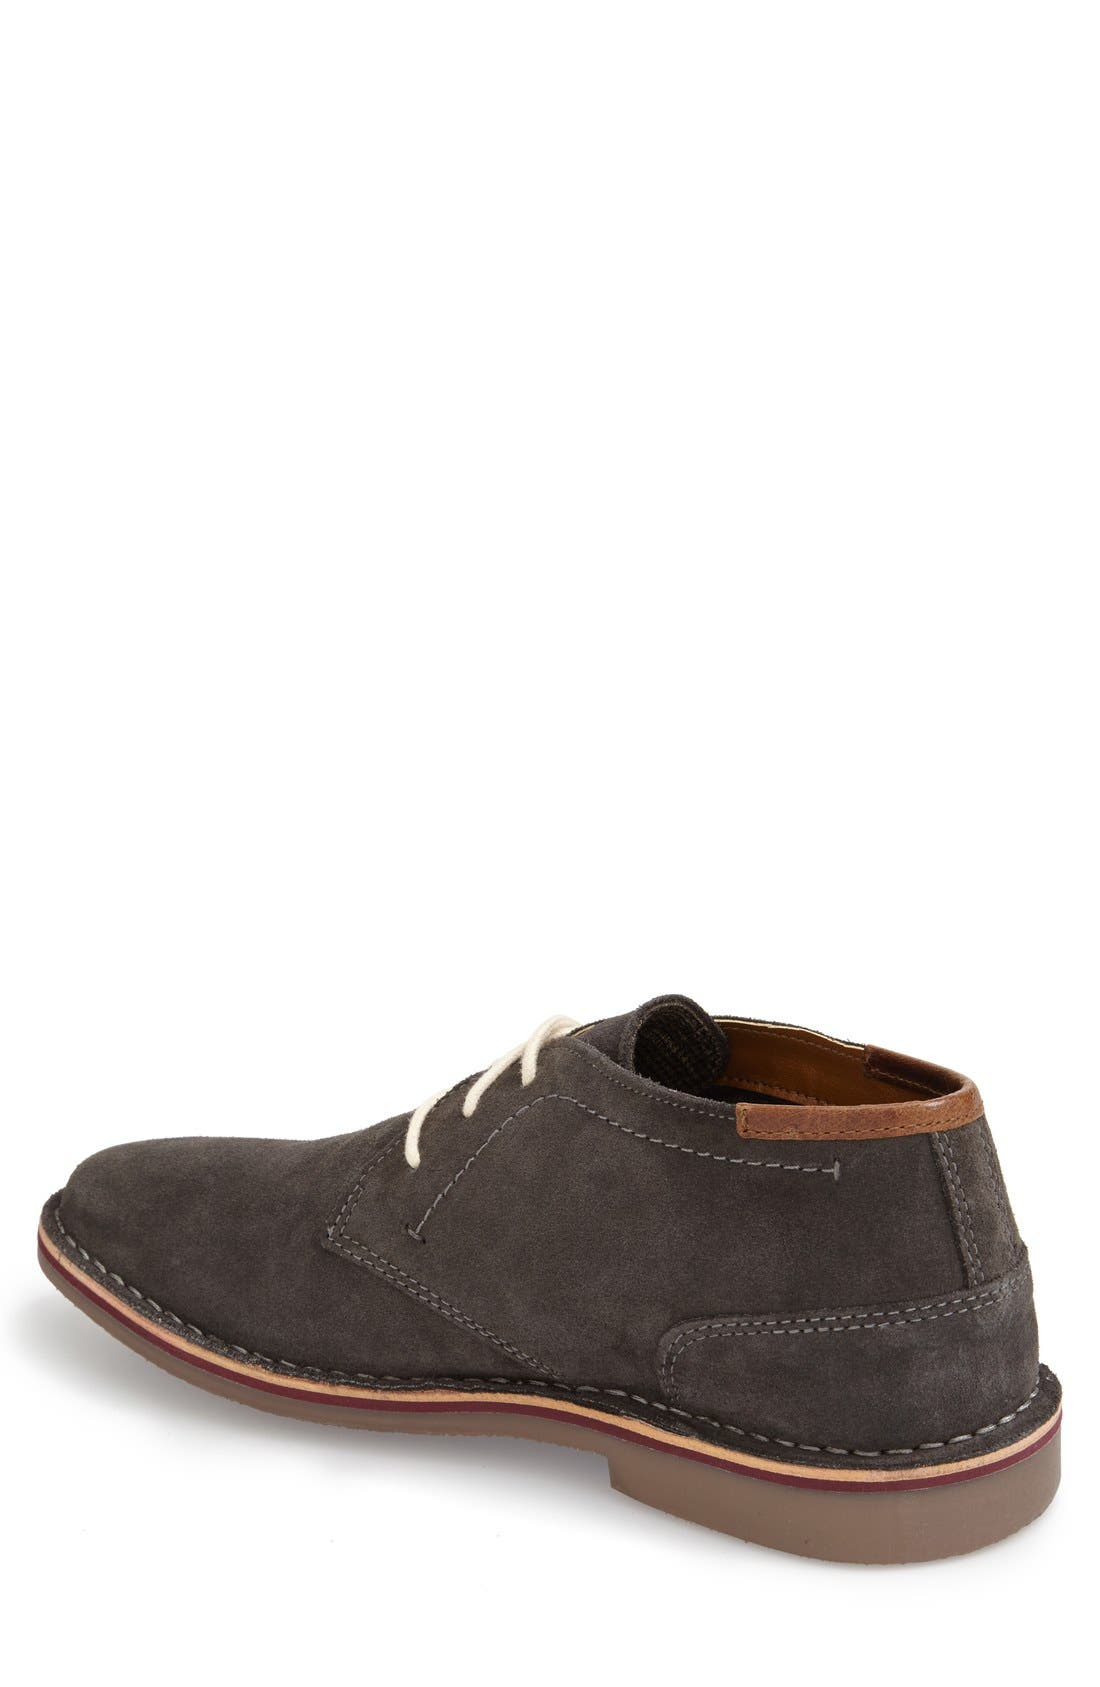 'Desert Sun' Chukka Boot,                             Alternate thumbnail 4, color,                             DARK GREY SUEDE